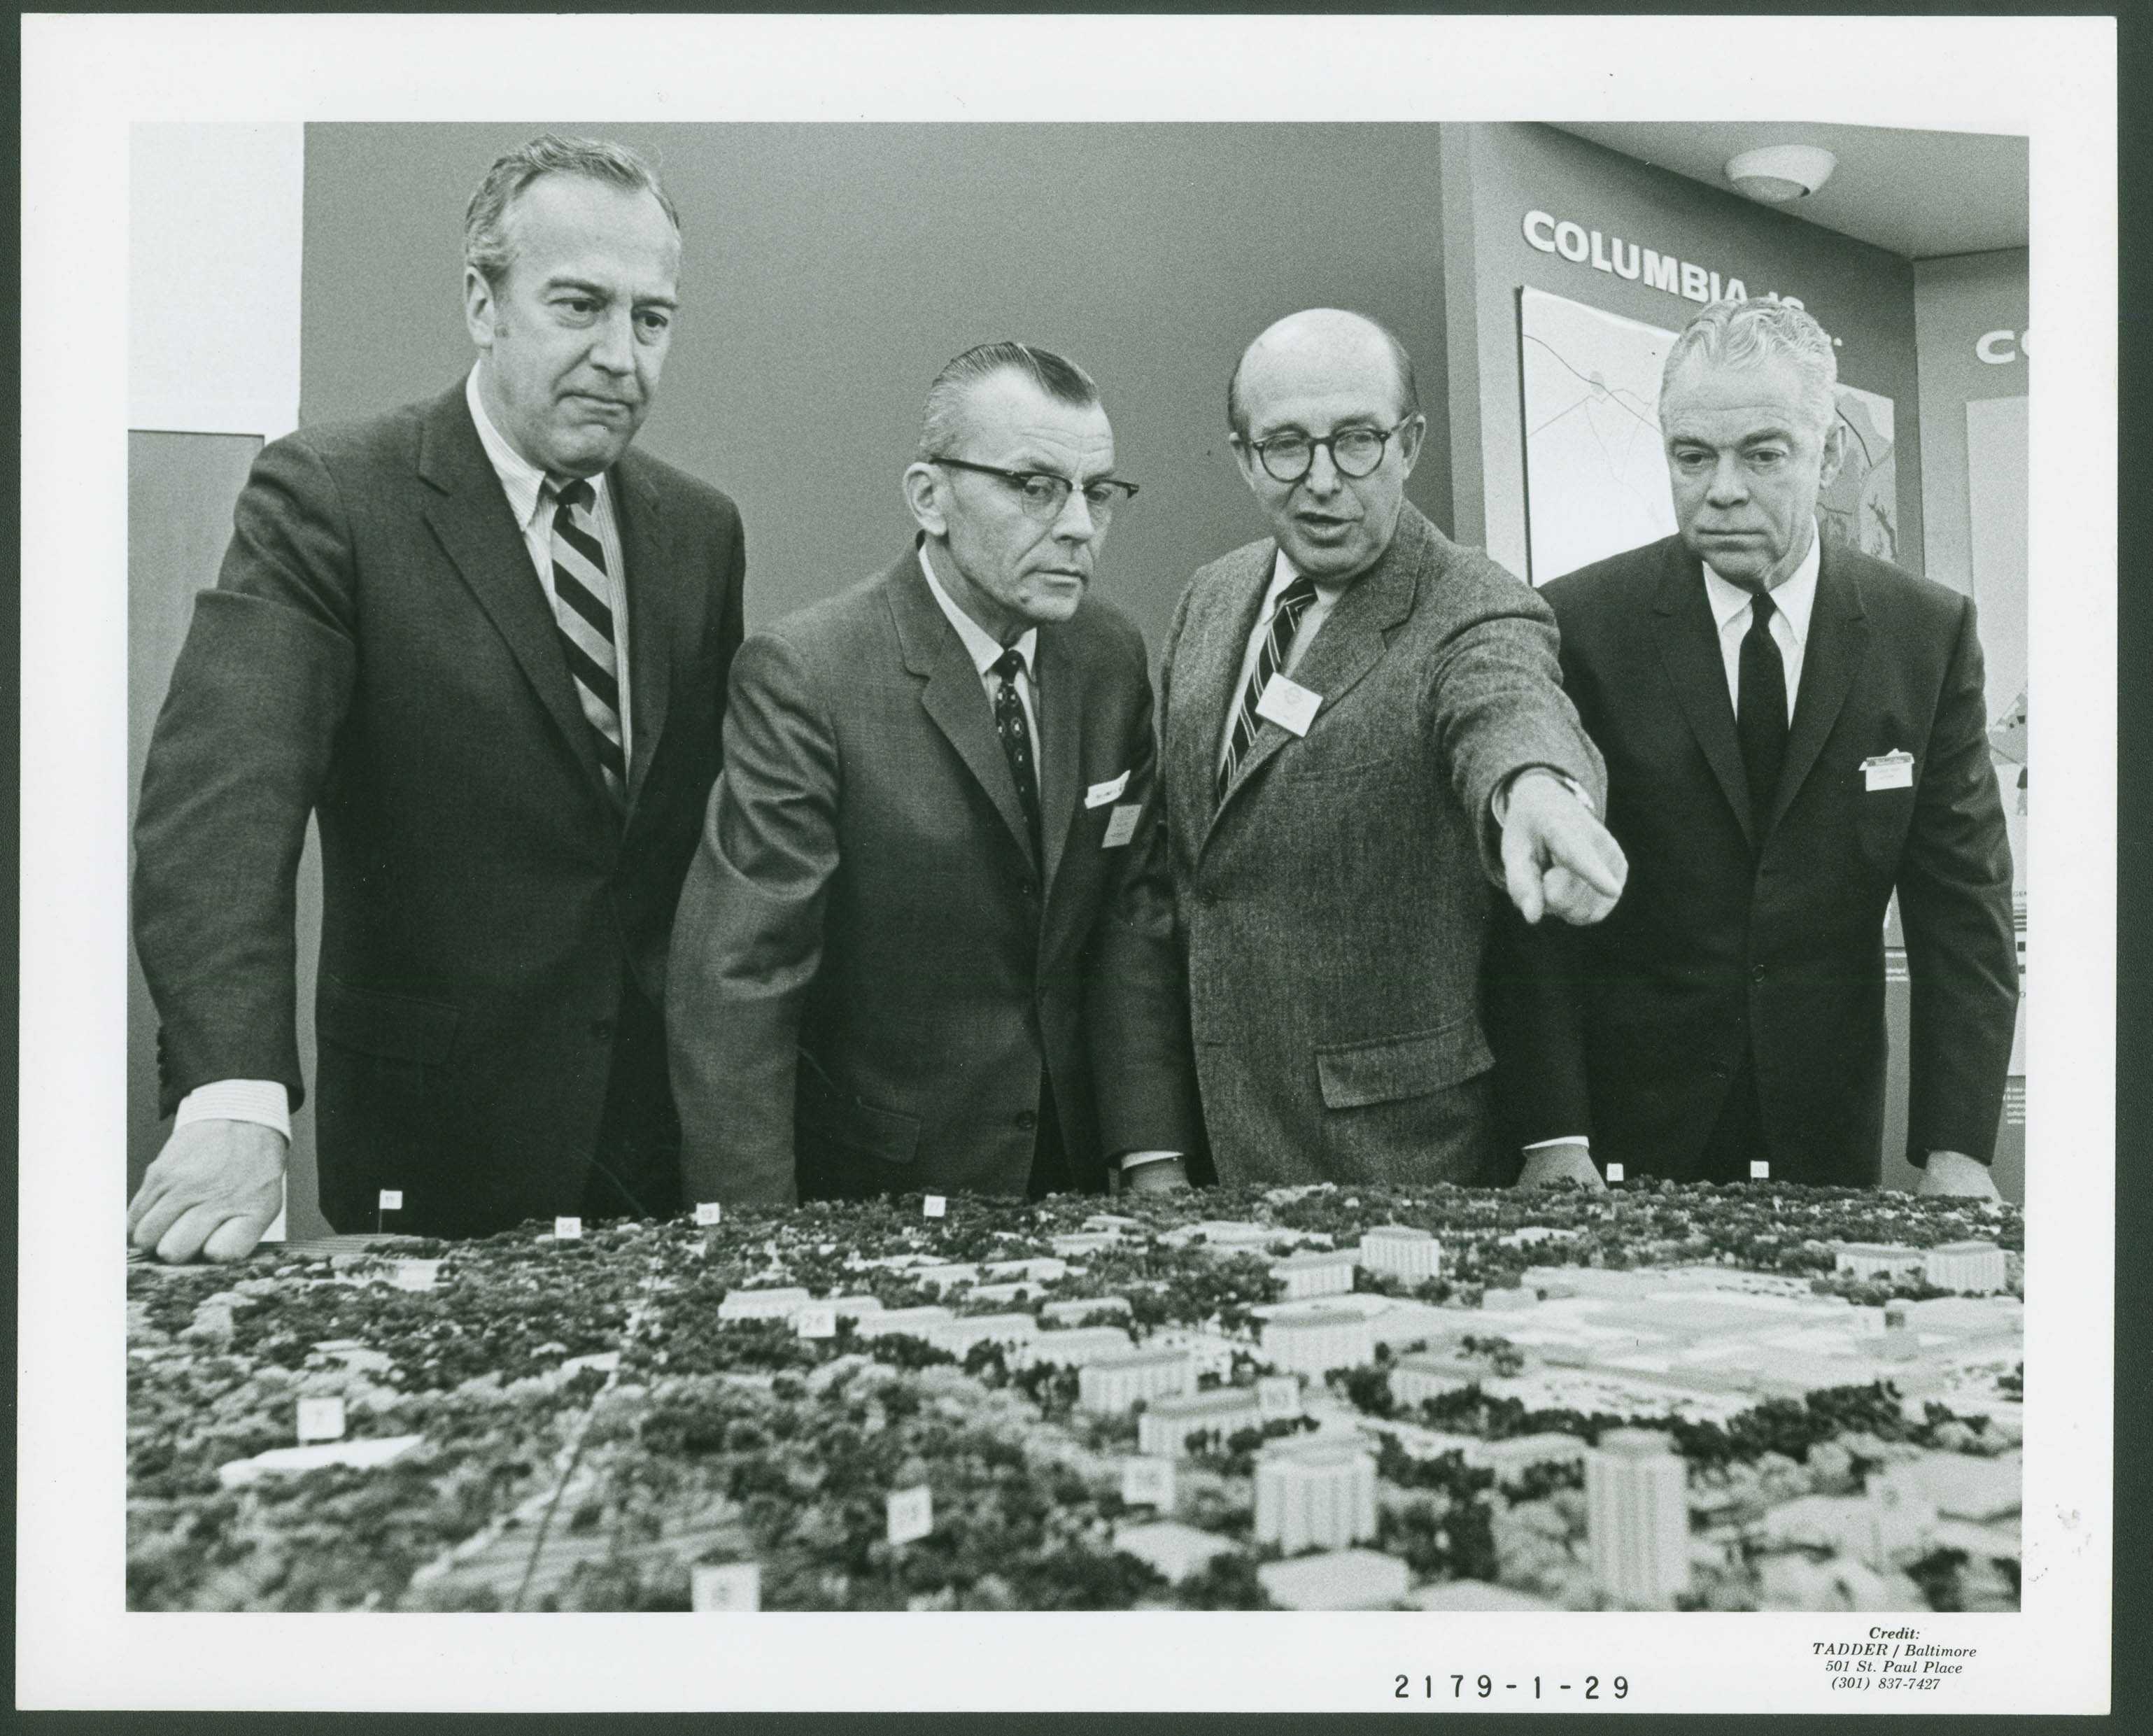 Jim Rouse and model of Columbia. Photo courtesy of the Columbia Archive.